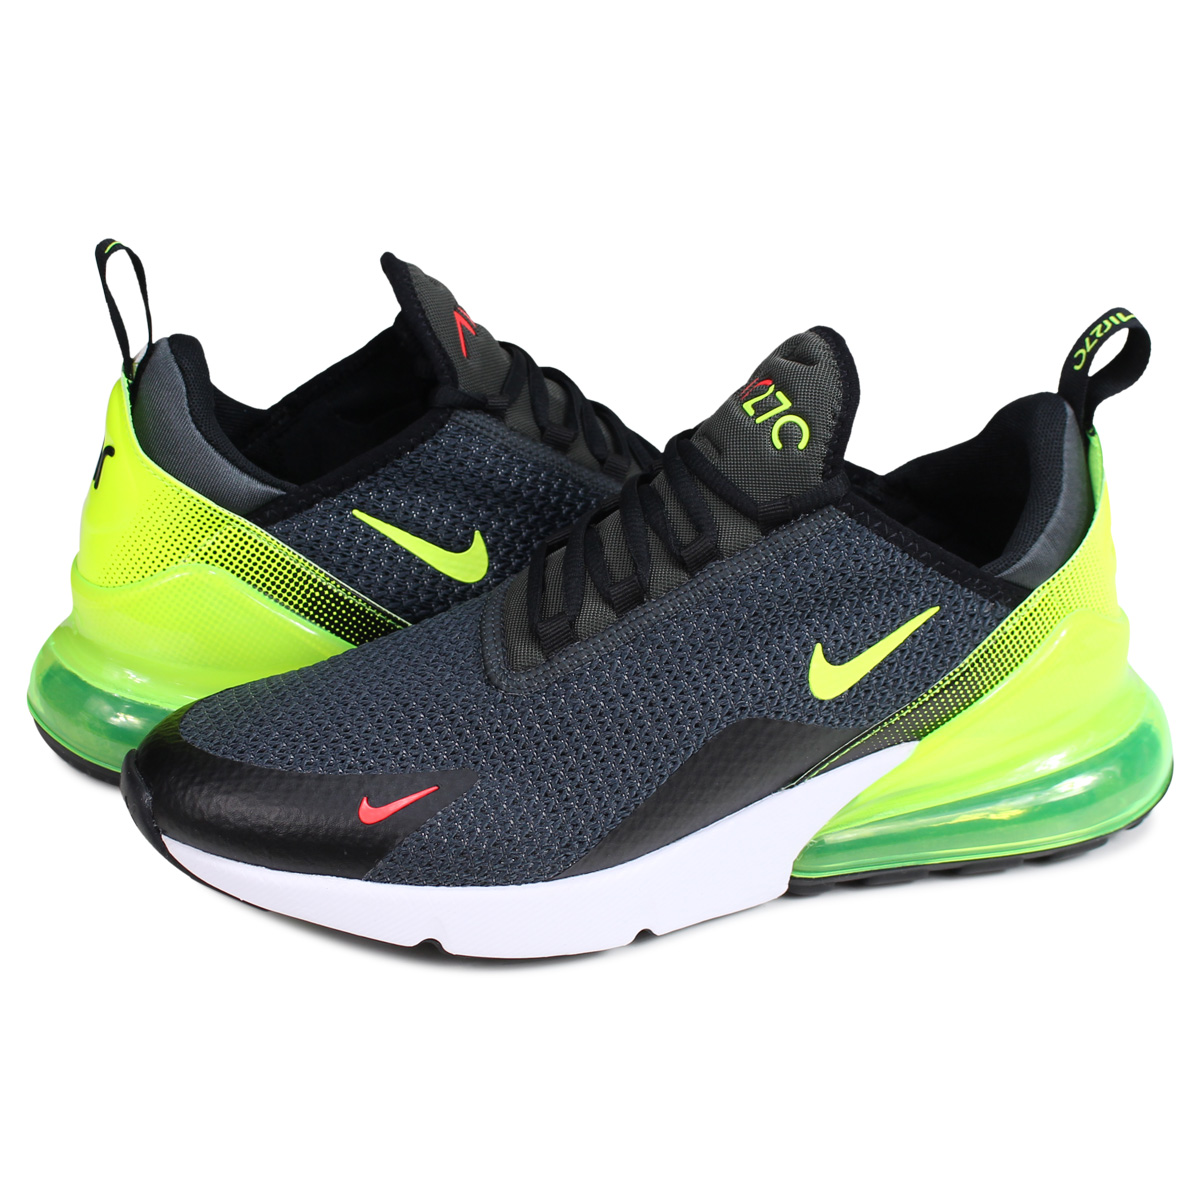 nike air max 270 indonesia price